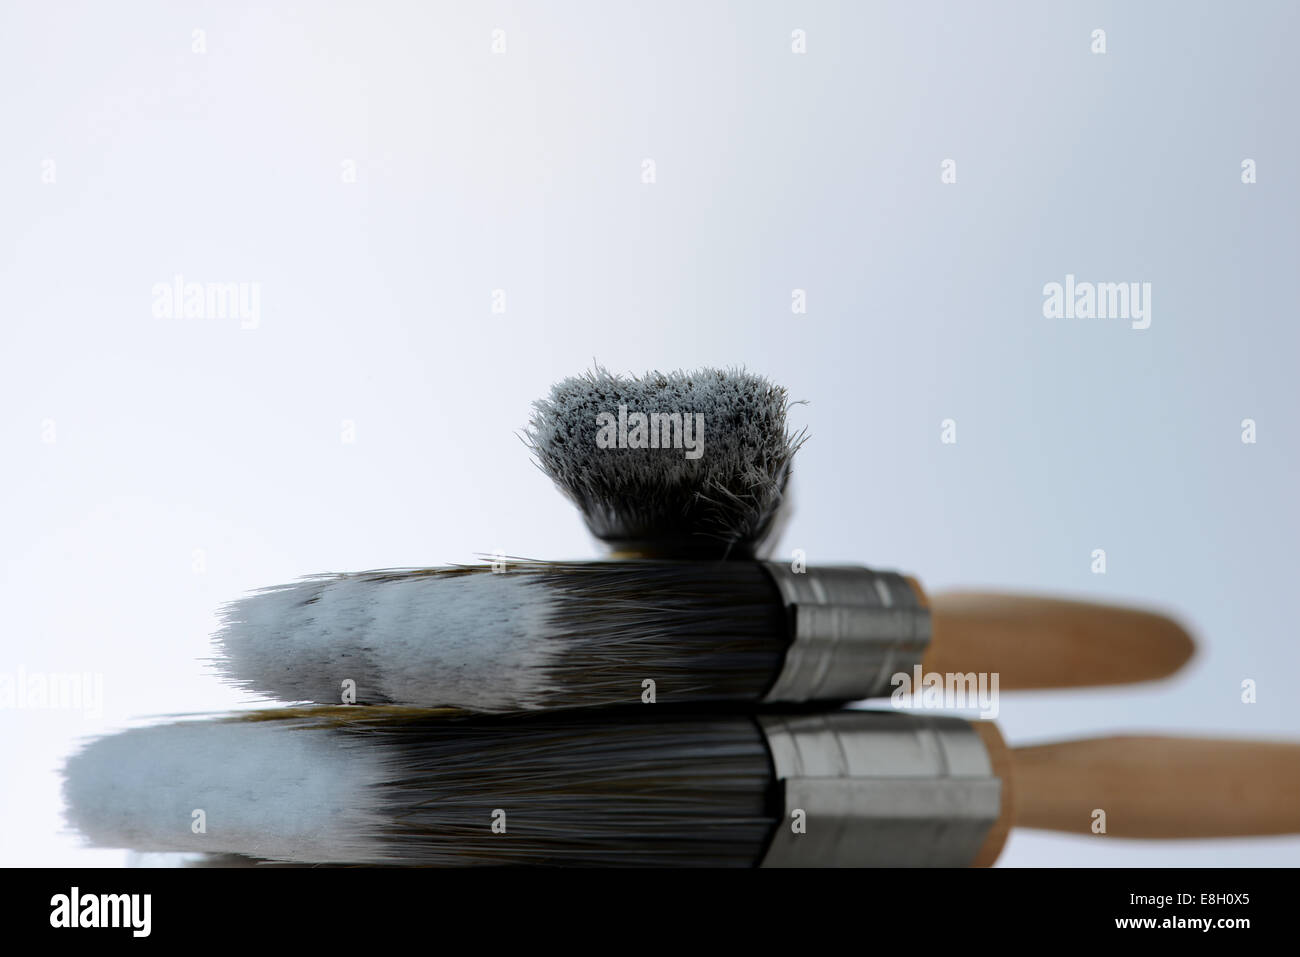 Paint brushes - Stock Image